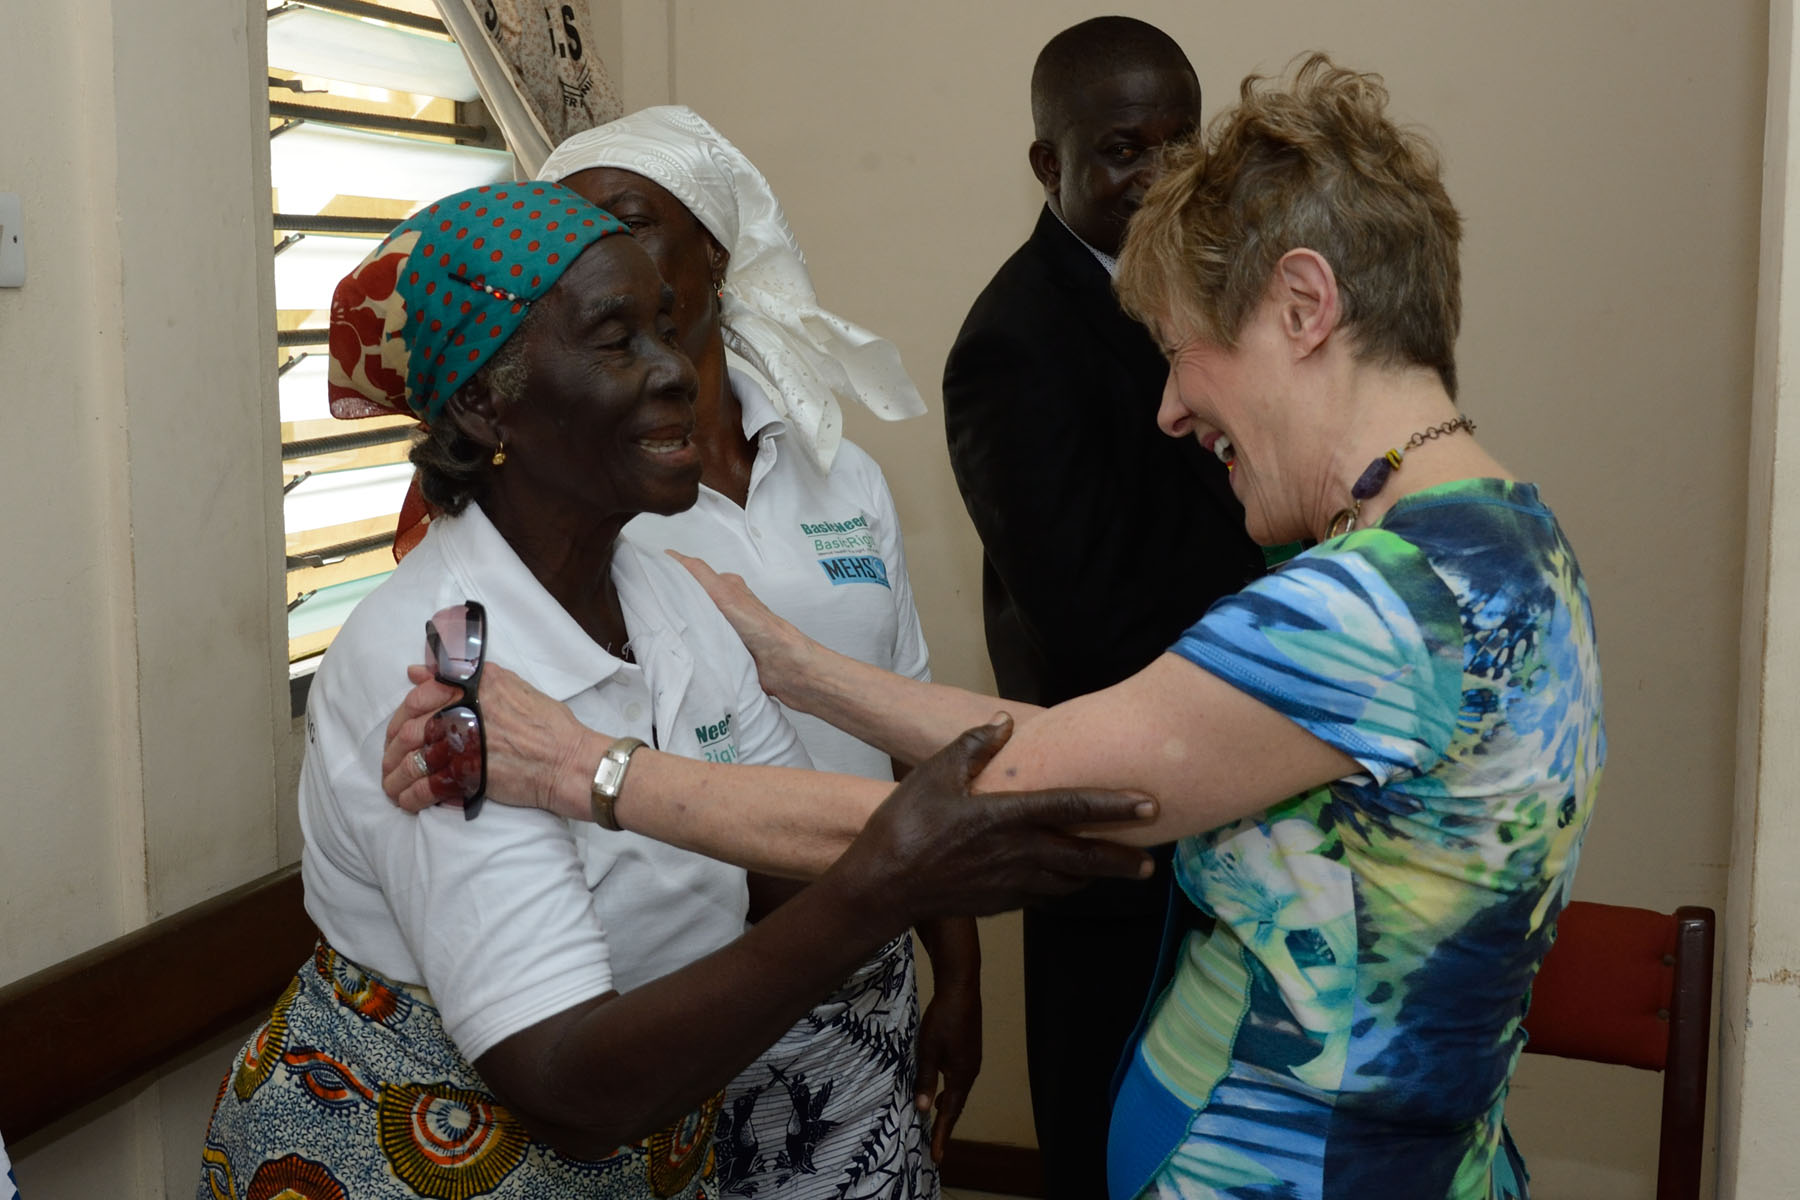 Her Excellency toured the psychiatry section of the hospital and met with staff.